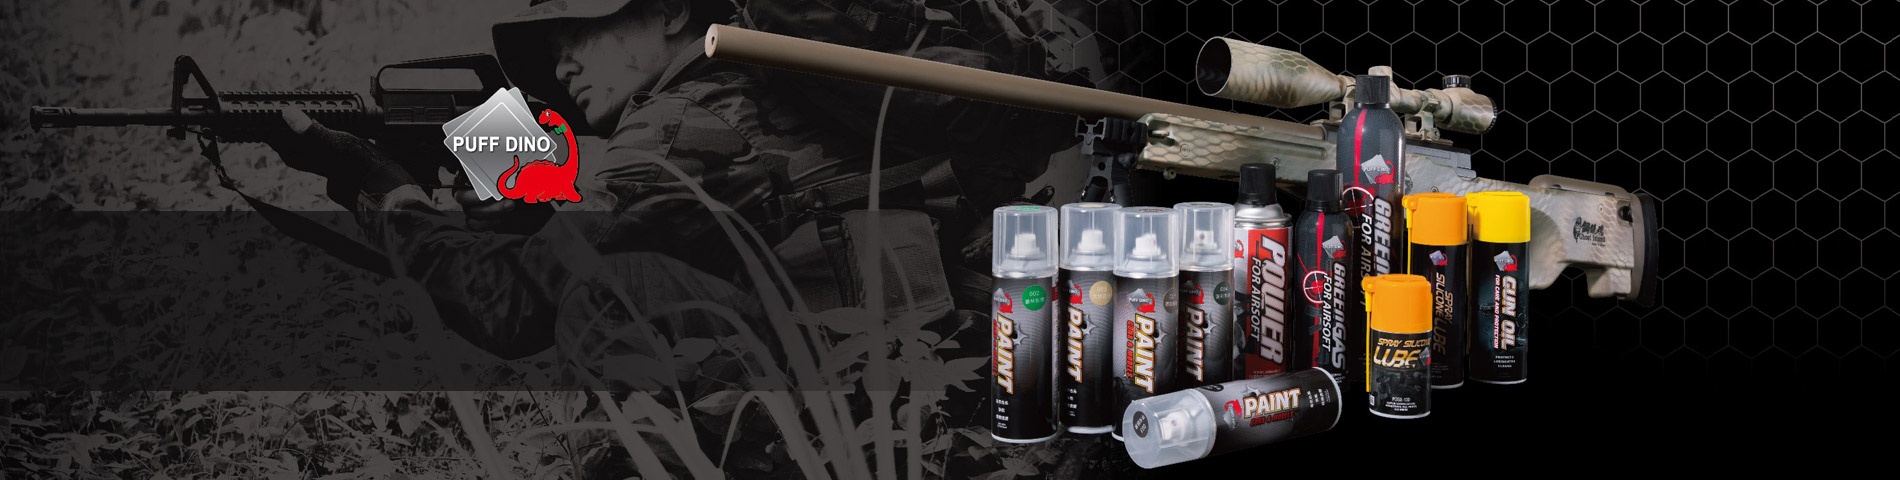 Airsoft & Firearm Supplies Secure Your Firearms & Equipment Other than our most famous Puff Dino Green Gas, we also have special design clean and maintenance product for military arm and airsoft gun use.